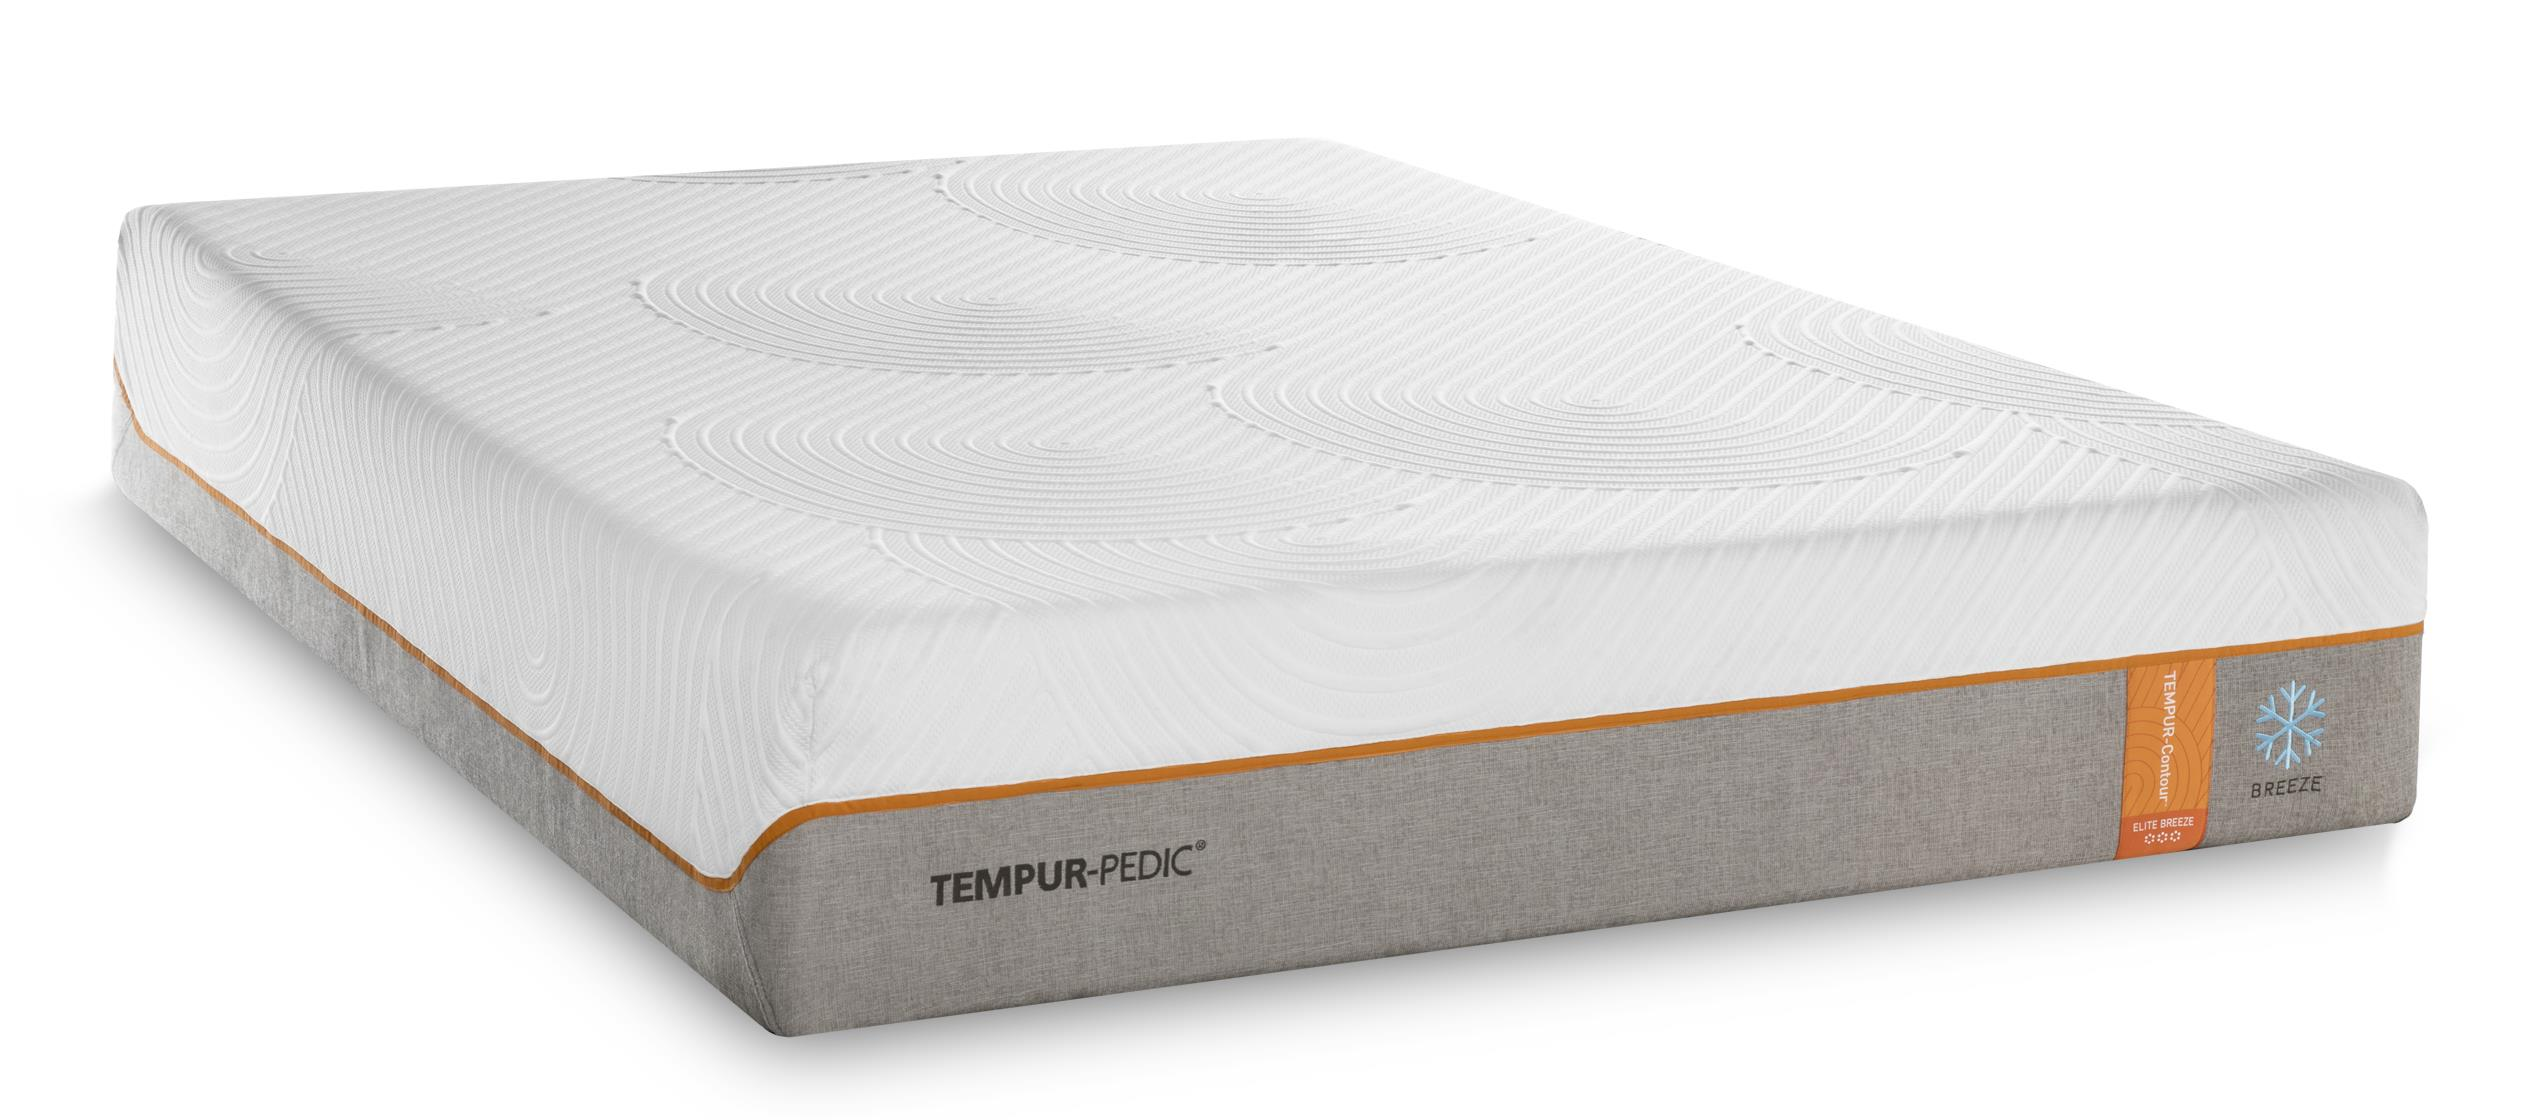 Tempur-Pedic® TEMPUR-Contour Elite Breeze Contour Elite Breeze Twin XL Medium-Firm - Item Number: 10290220